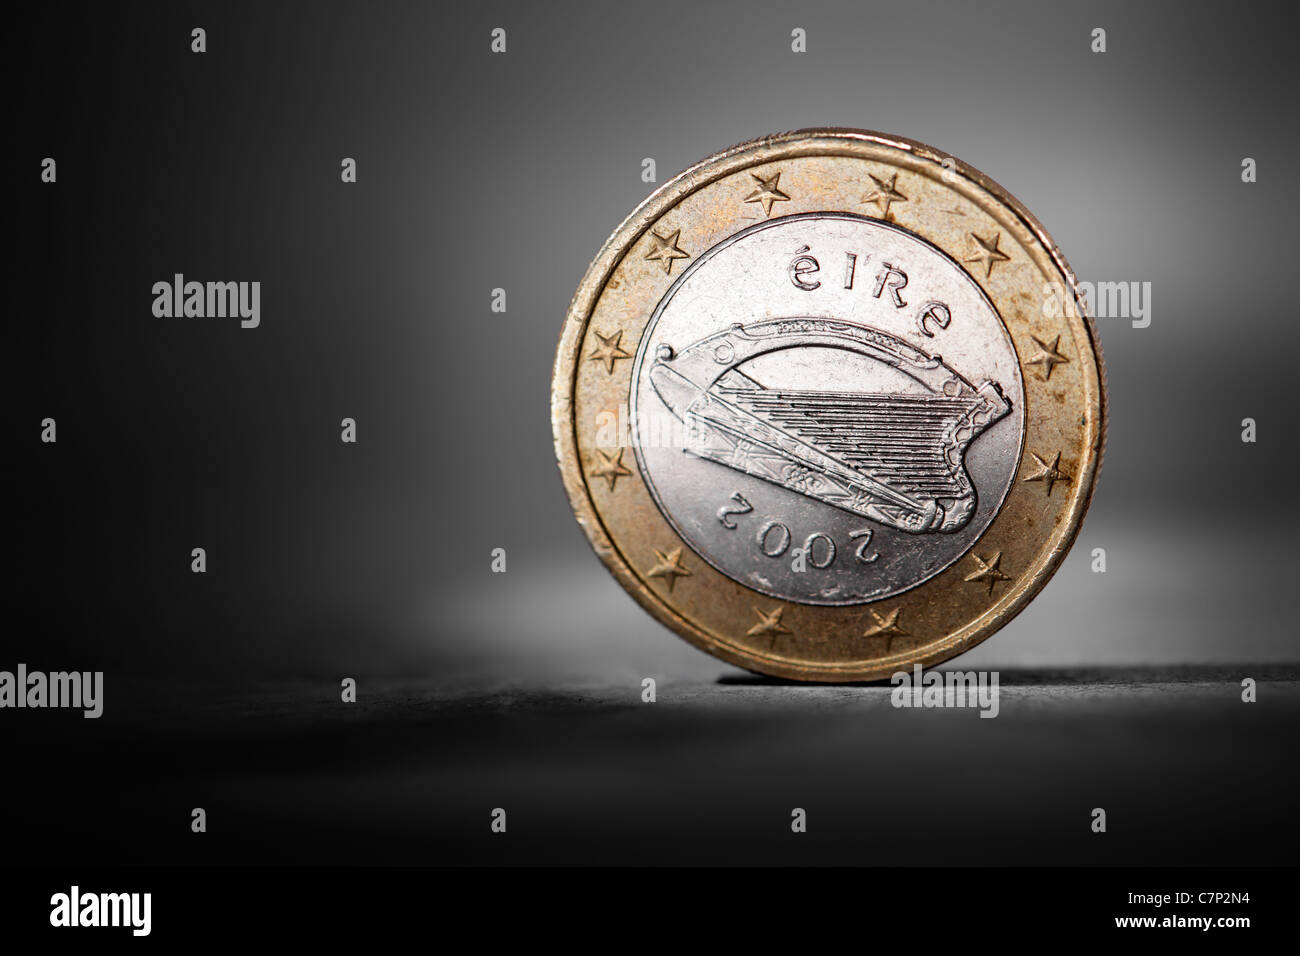 Irish one euro coin showing the national backside. Short depth-of-field. - Stock Image